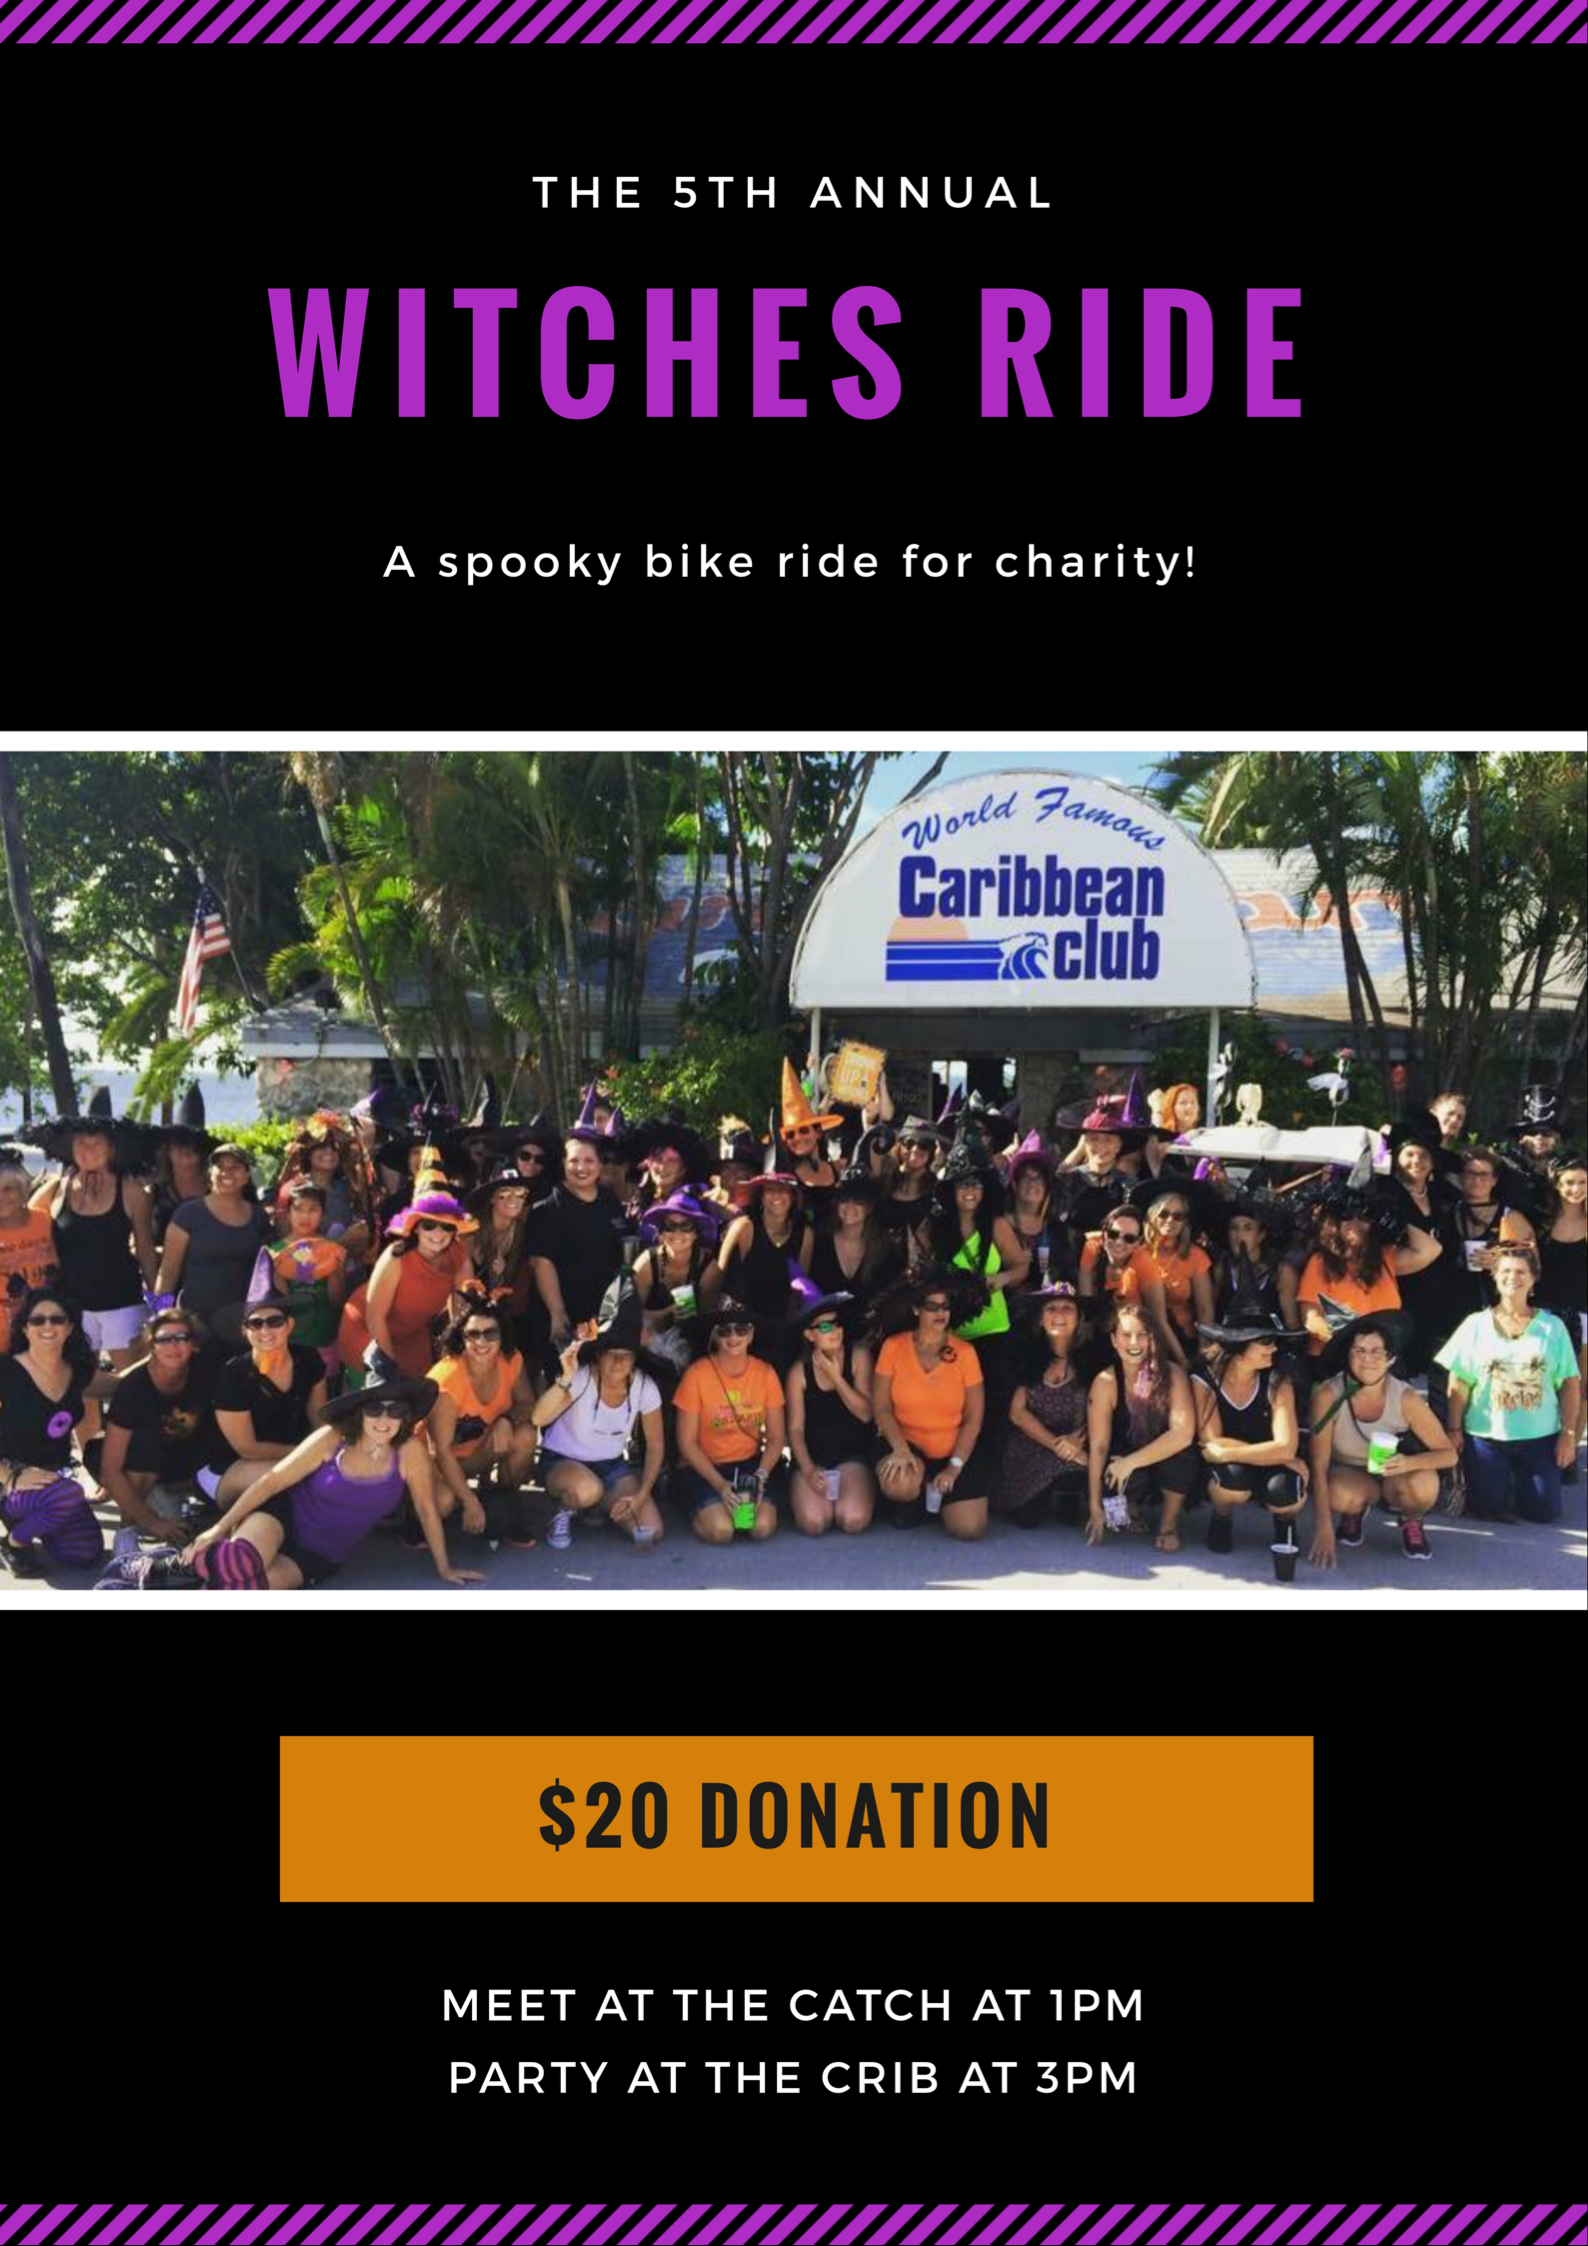 Join us for the 5th annual Witches Ride, a spooky bike ride of a good cause! All money raised will be donated to a scholarship fund for a local student.   $20 donation gets you a themed coozie cup and a raffle ticket for some awesome door prizes!   Event starts at The Catch Restaurant at 1pm and moves to a big party at the Caribbean Club at 3pm.  School of Rock - Miami will be playing at the Caribbean Club!   Witches and Warlocks welcome.